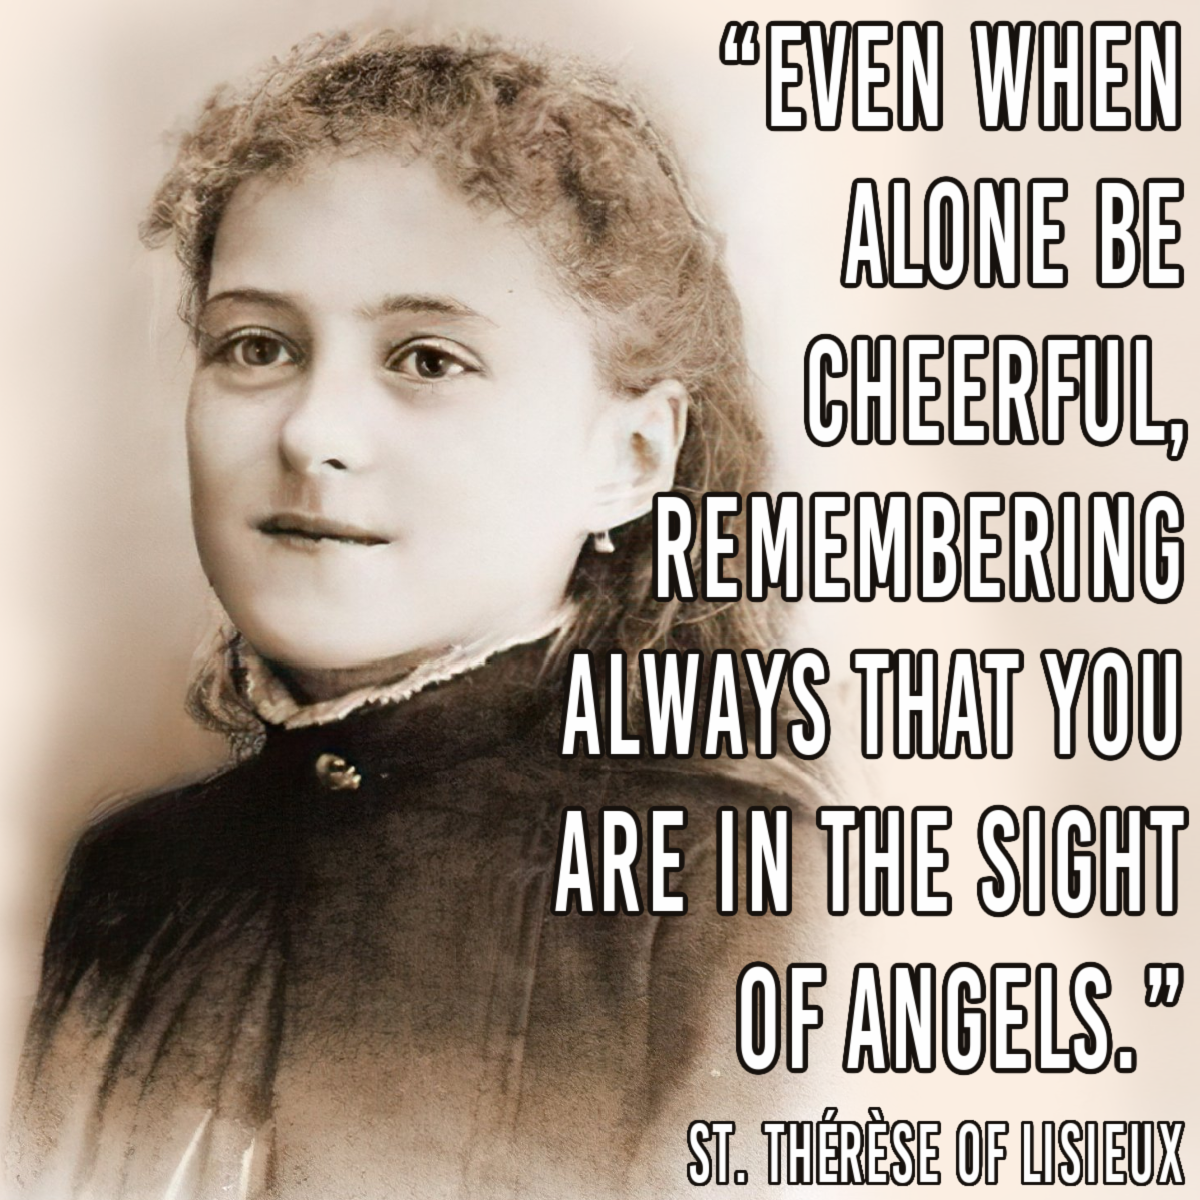 """Even when alone be cheerful, remembering always that you are in the sight of angels."" — St. Thérèse of Lisieux"